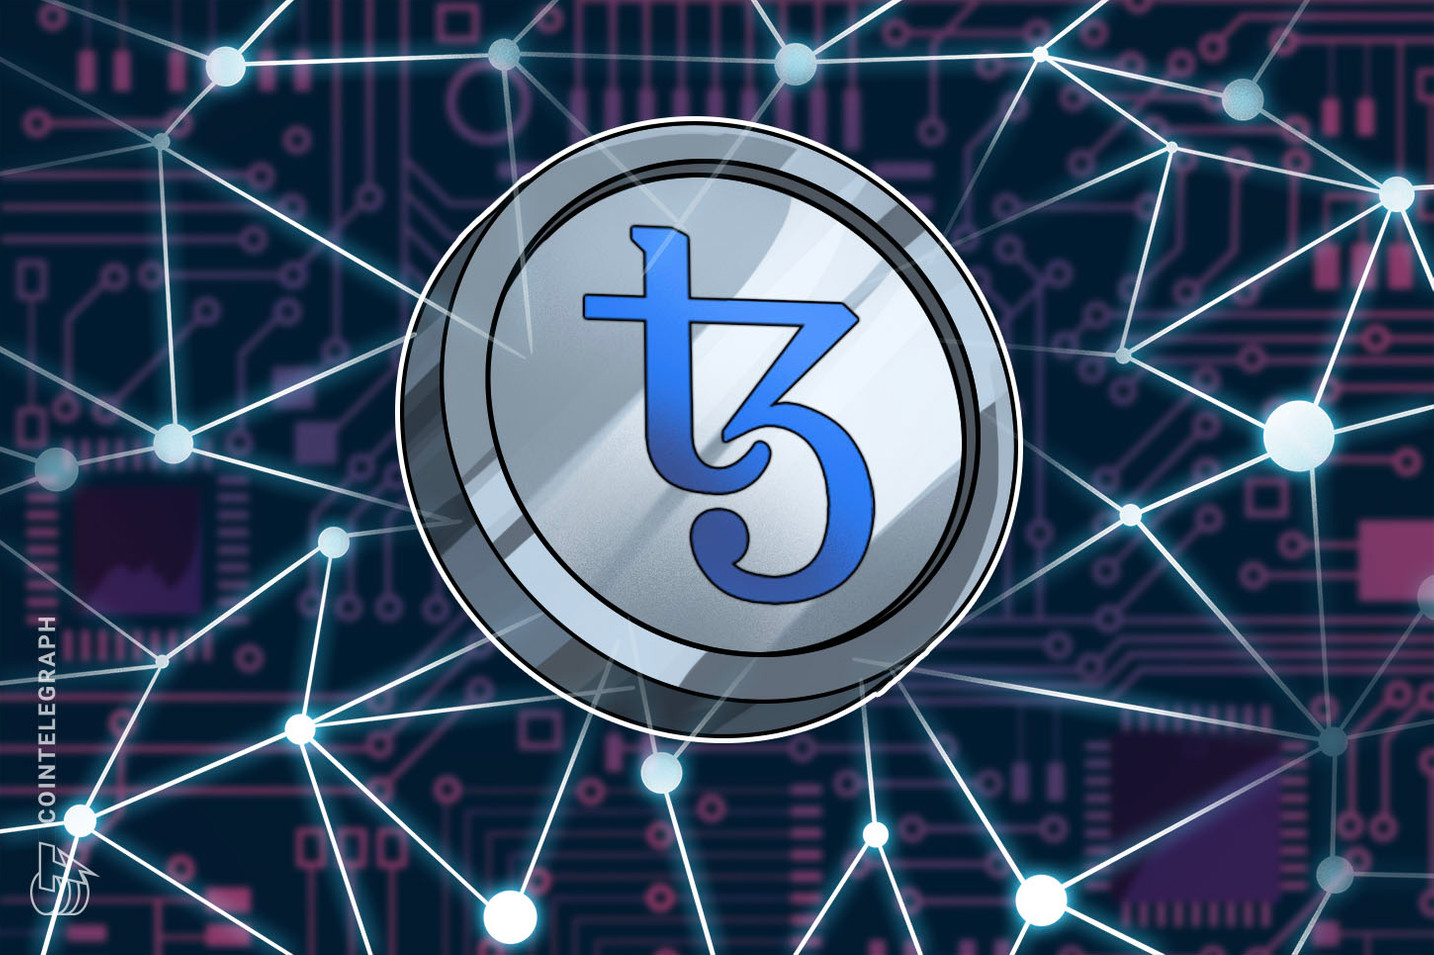 Tezos upgrade reduces smart contract fees by 75% to attract DeFi